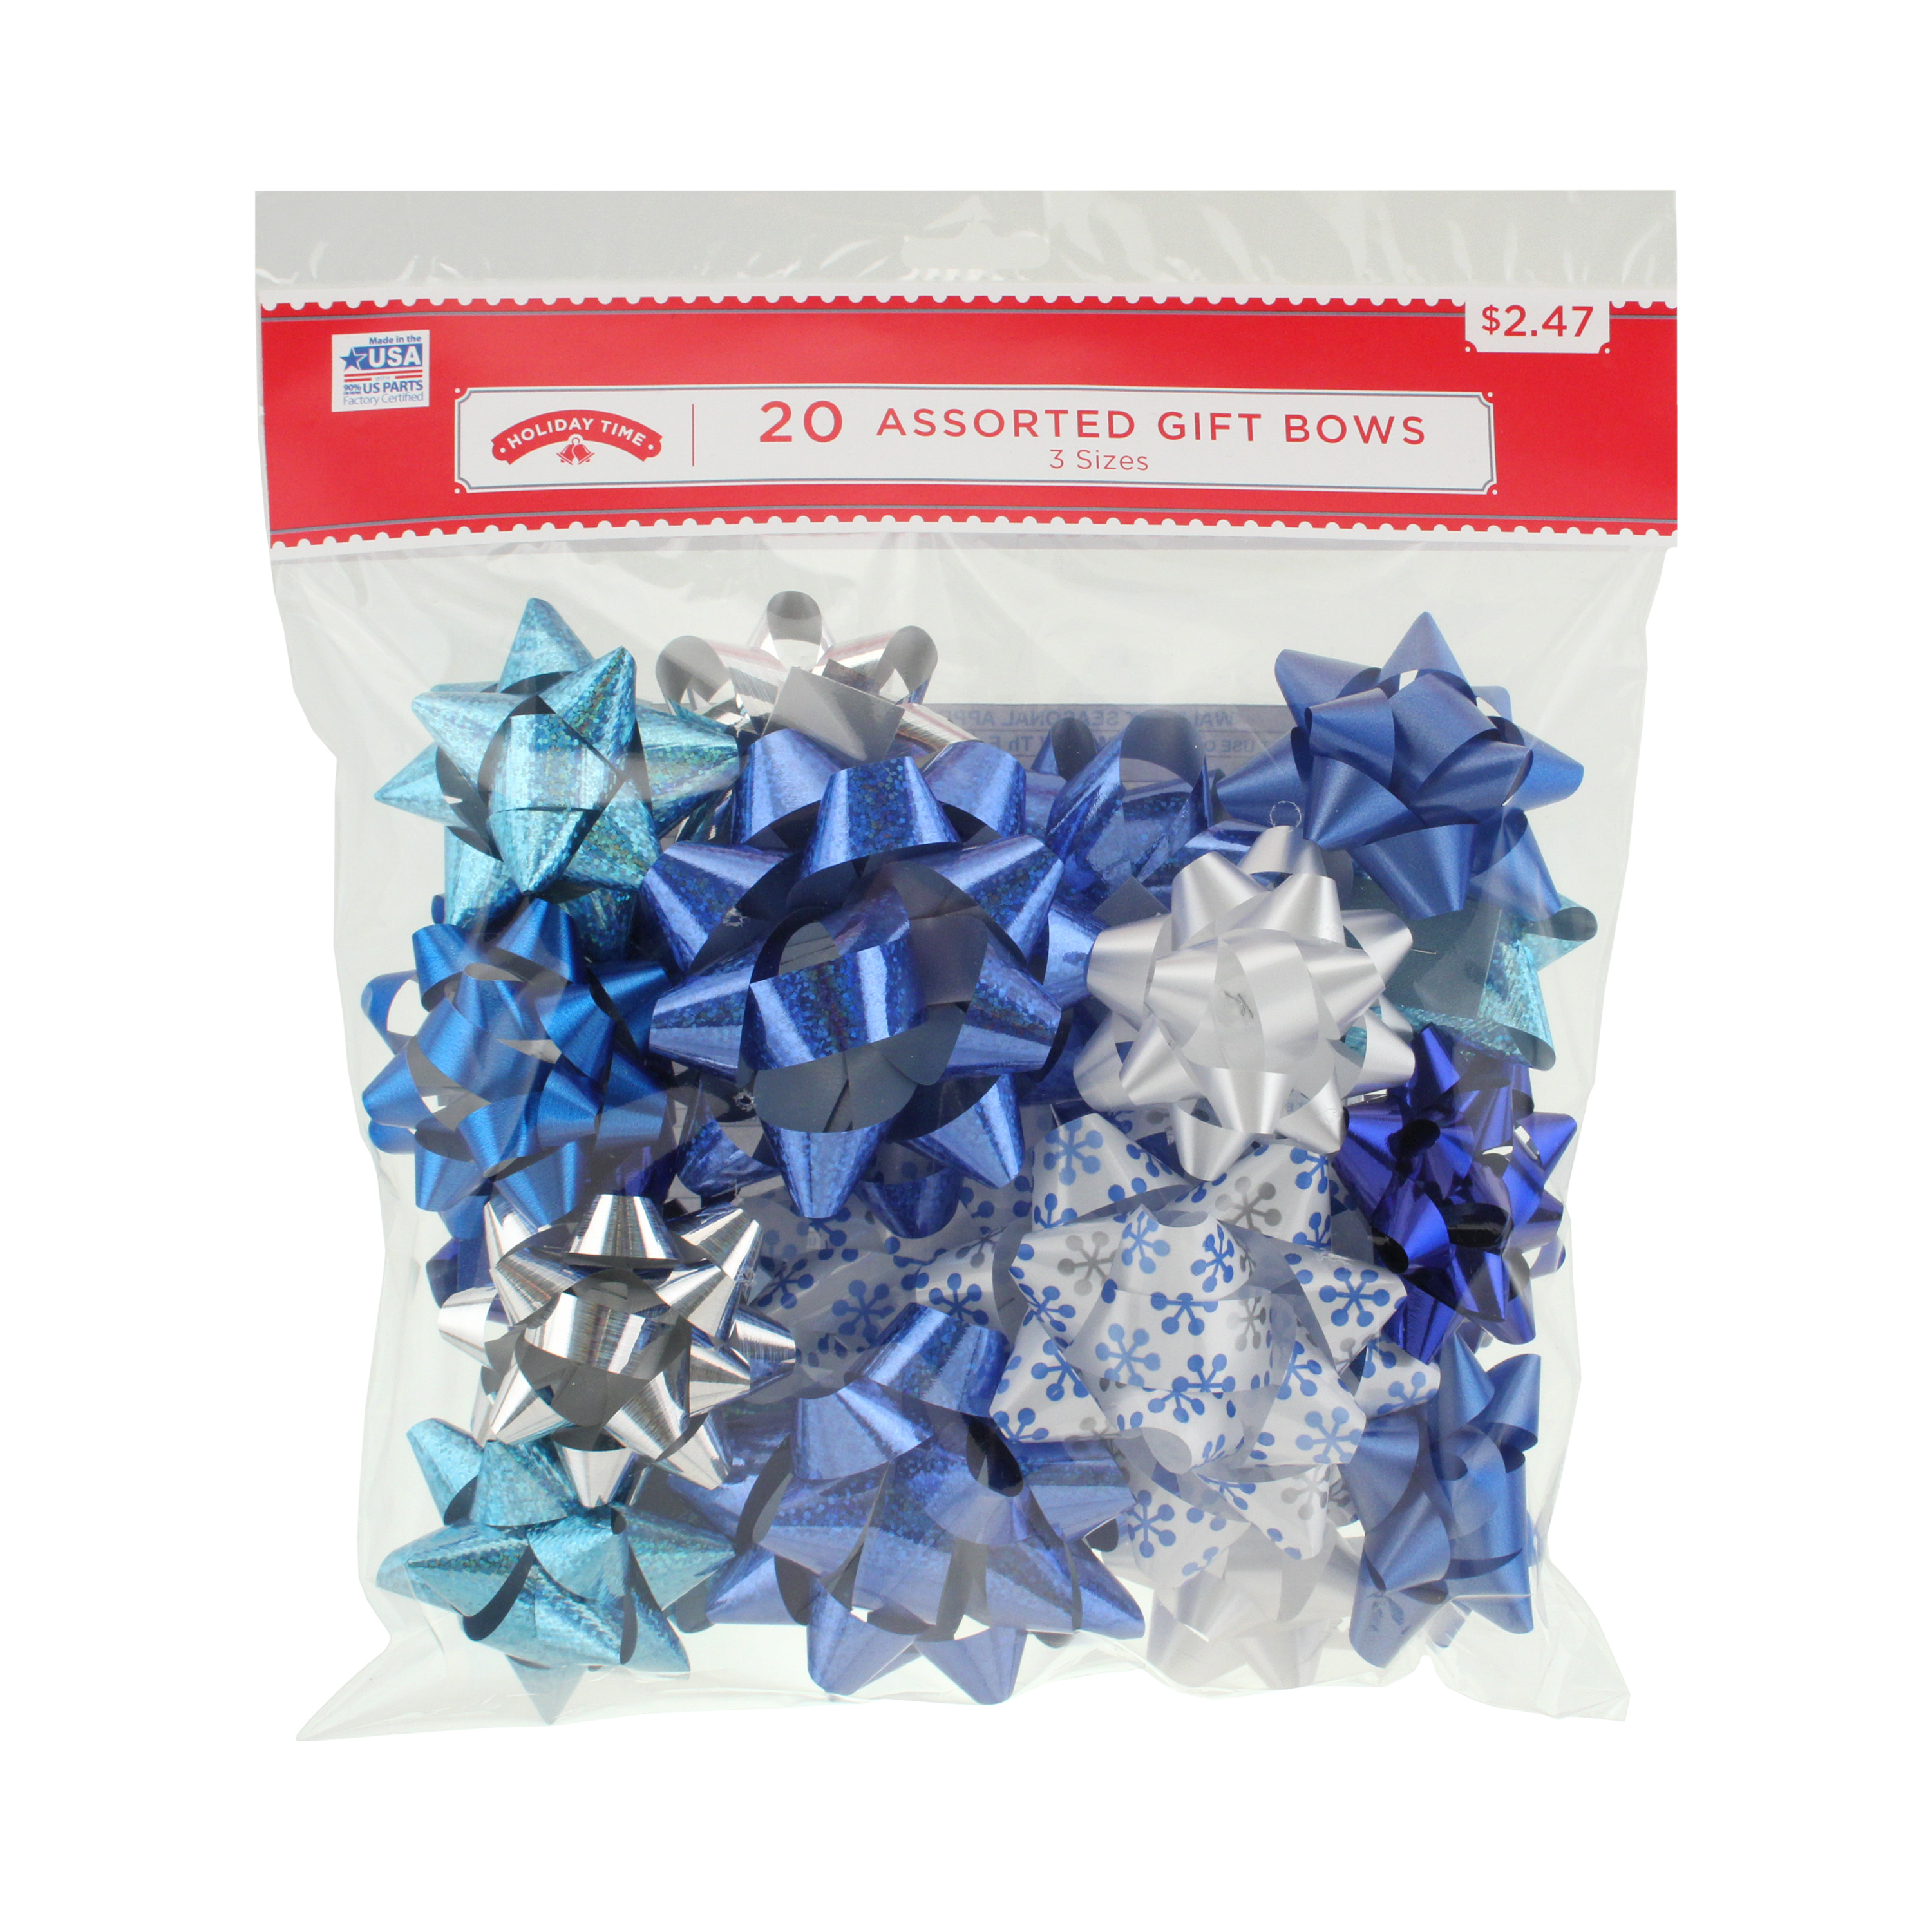 20 COUNT GIFT BOW ASSORTMENT -BLUE/WHITE/SILVER